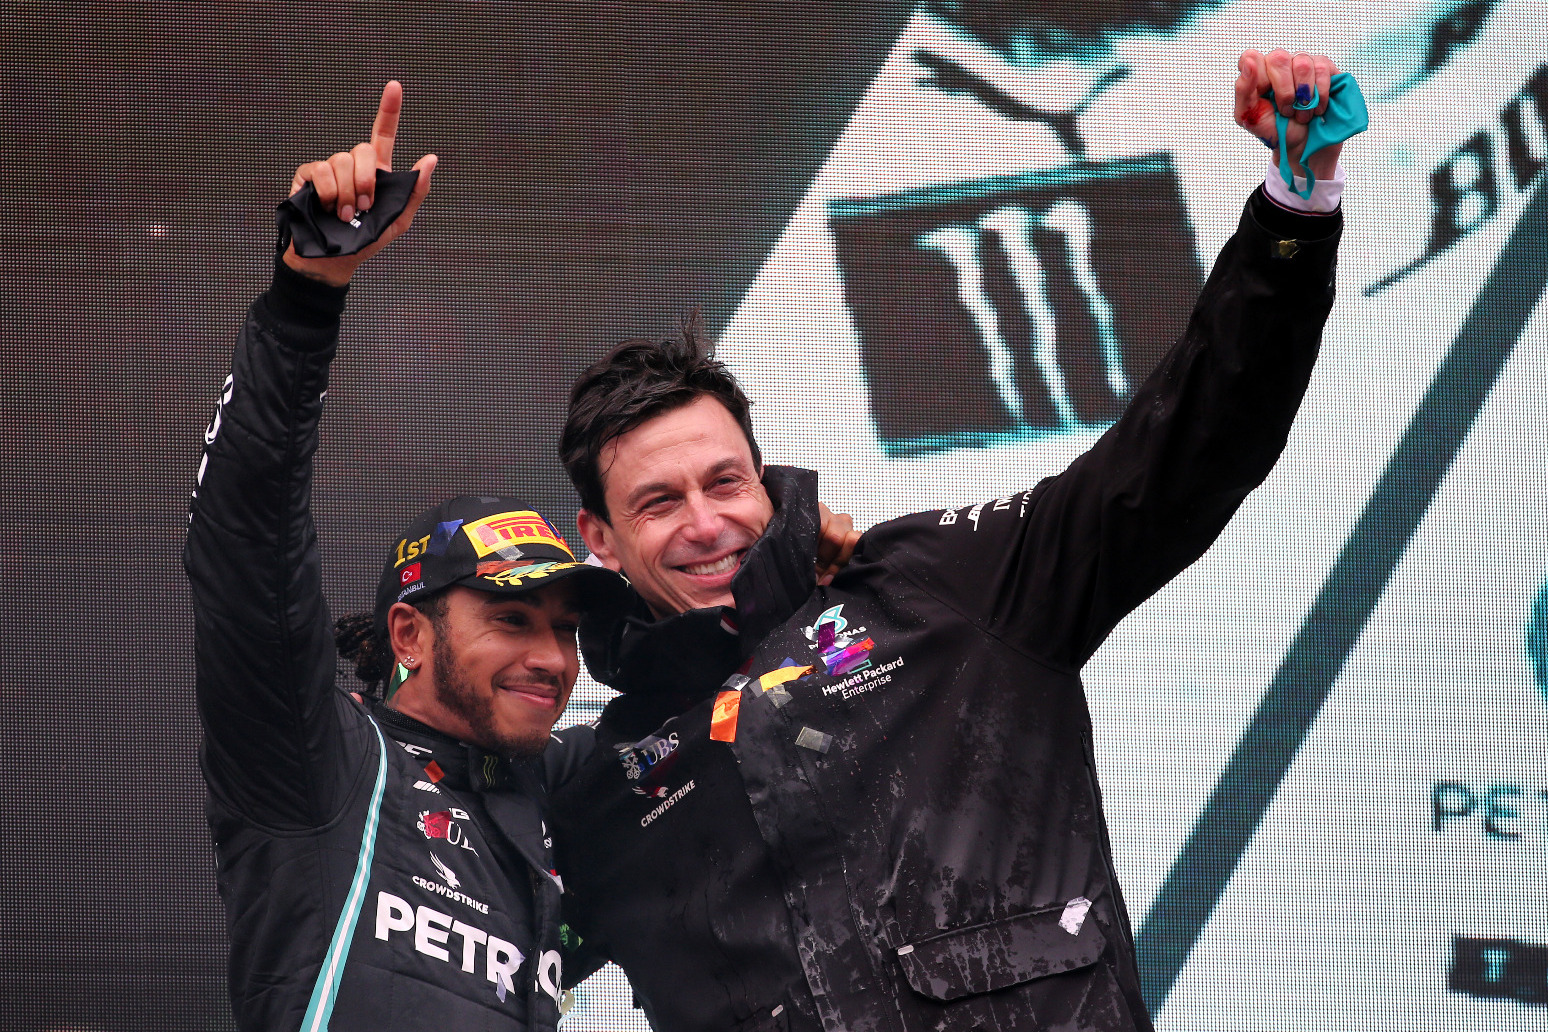 Toto Wolff believes 'exceptional' is the new normal for Lewis Hamilton